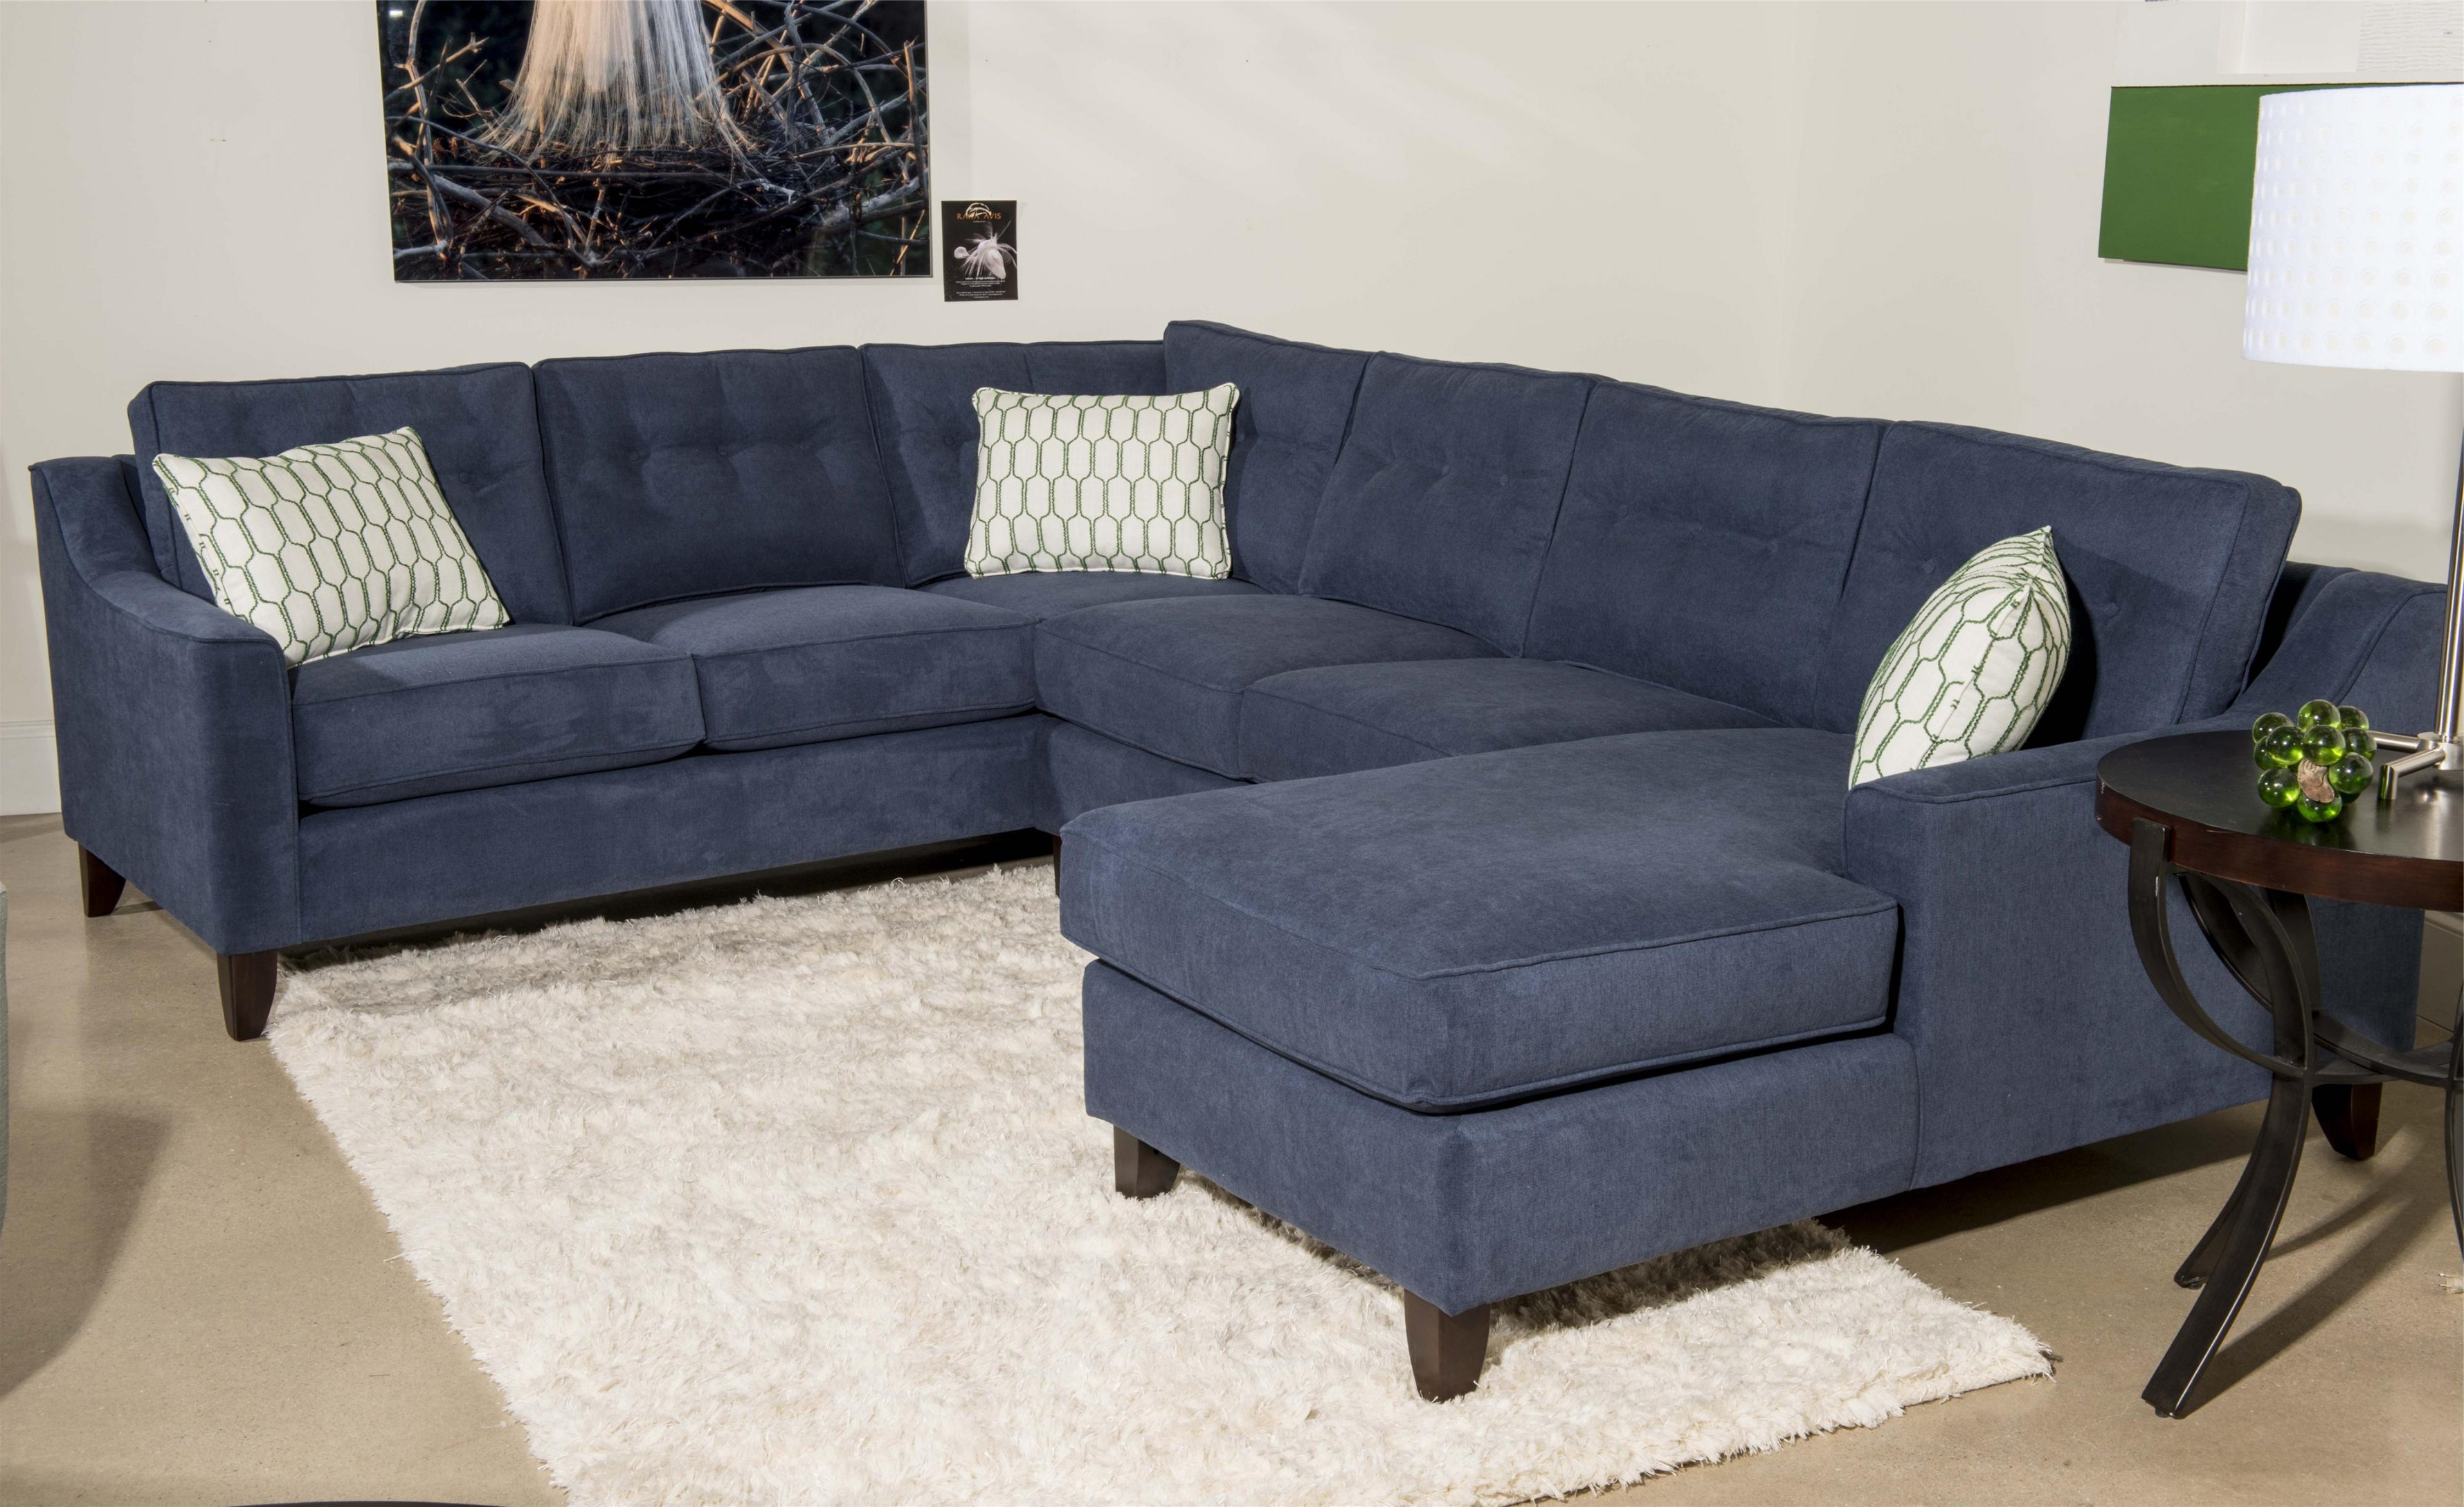 Preferred Meyer 3 Piece Sectionals With Laf Chaise Intended For 3 Chaise Sectional (View 12 of 20)